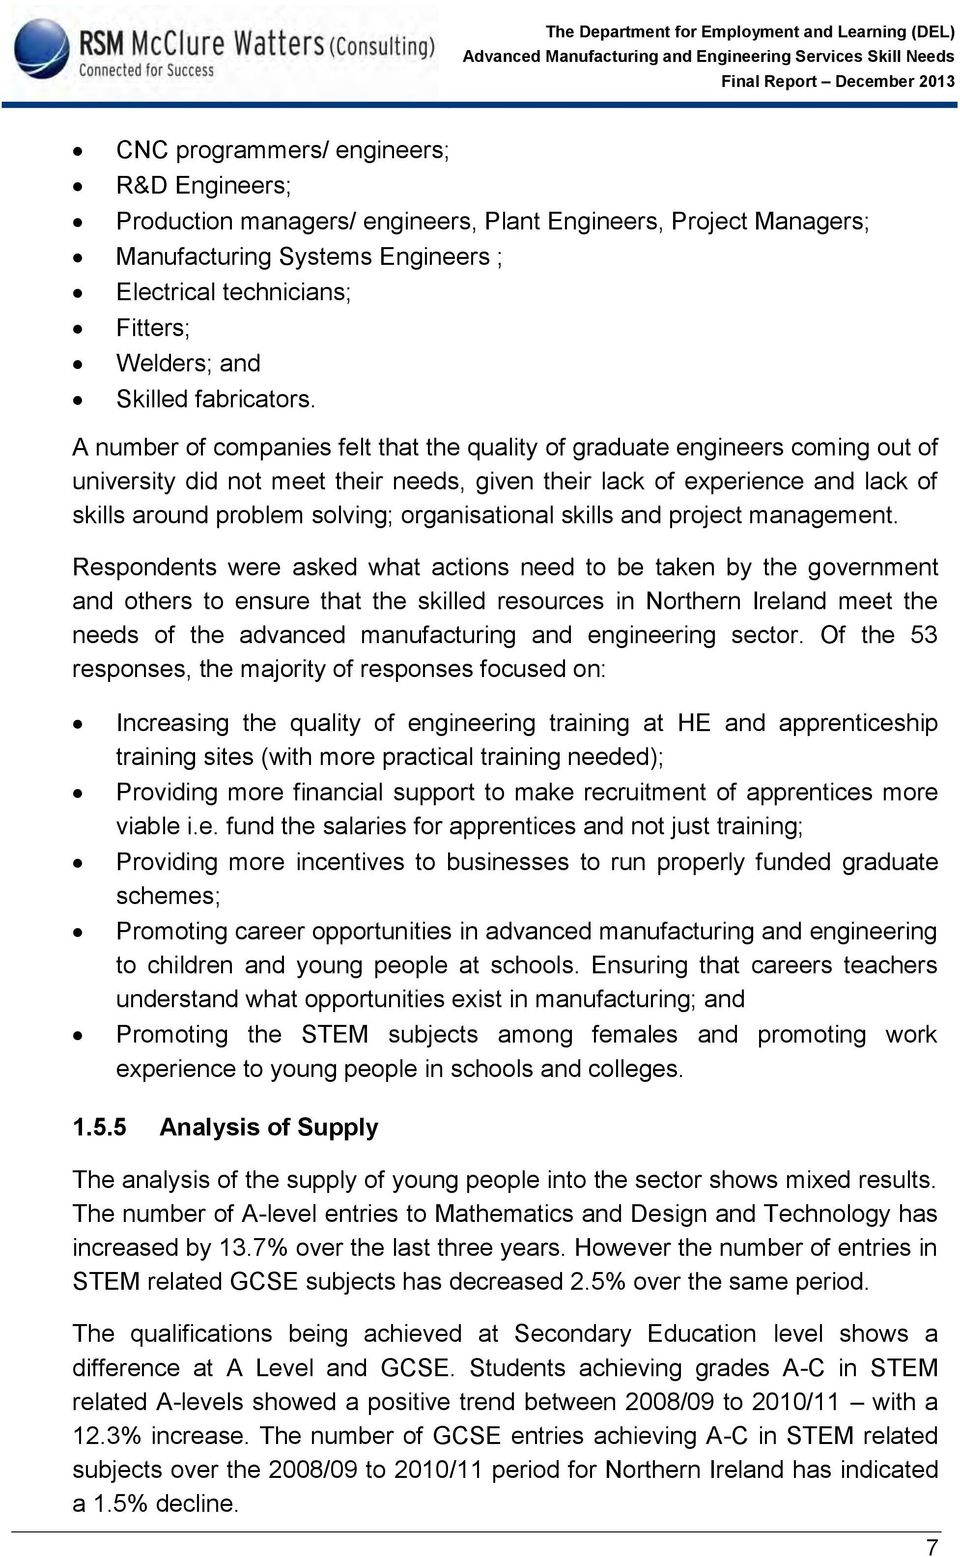 A number of companies felt that the quality of graduate engineers coming out of university did not meet their needs, given their lack of experience and lack of skills around problem solving;